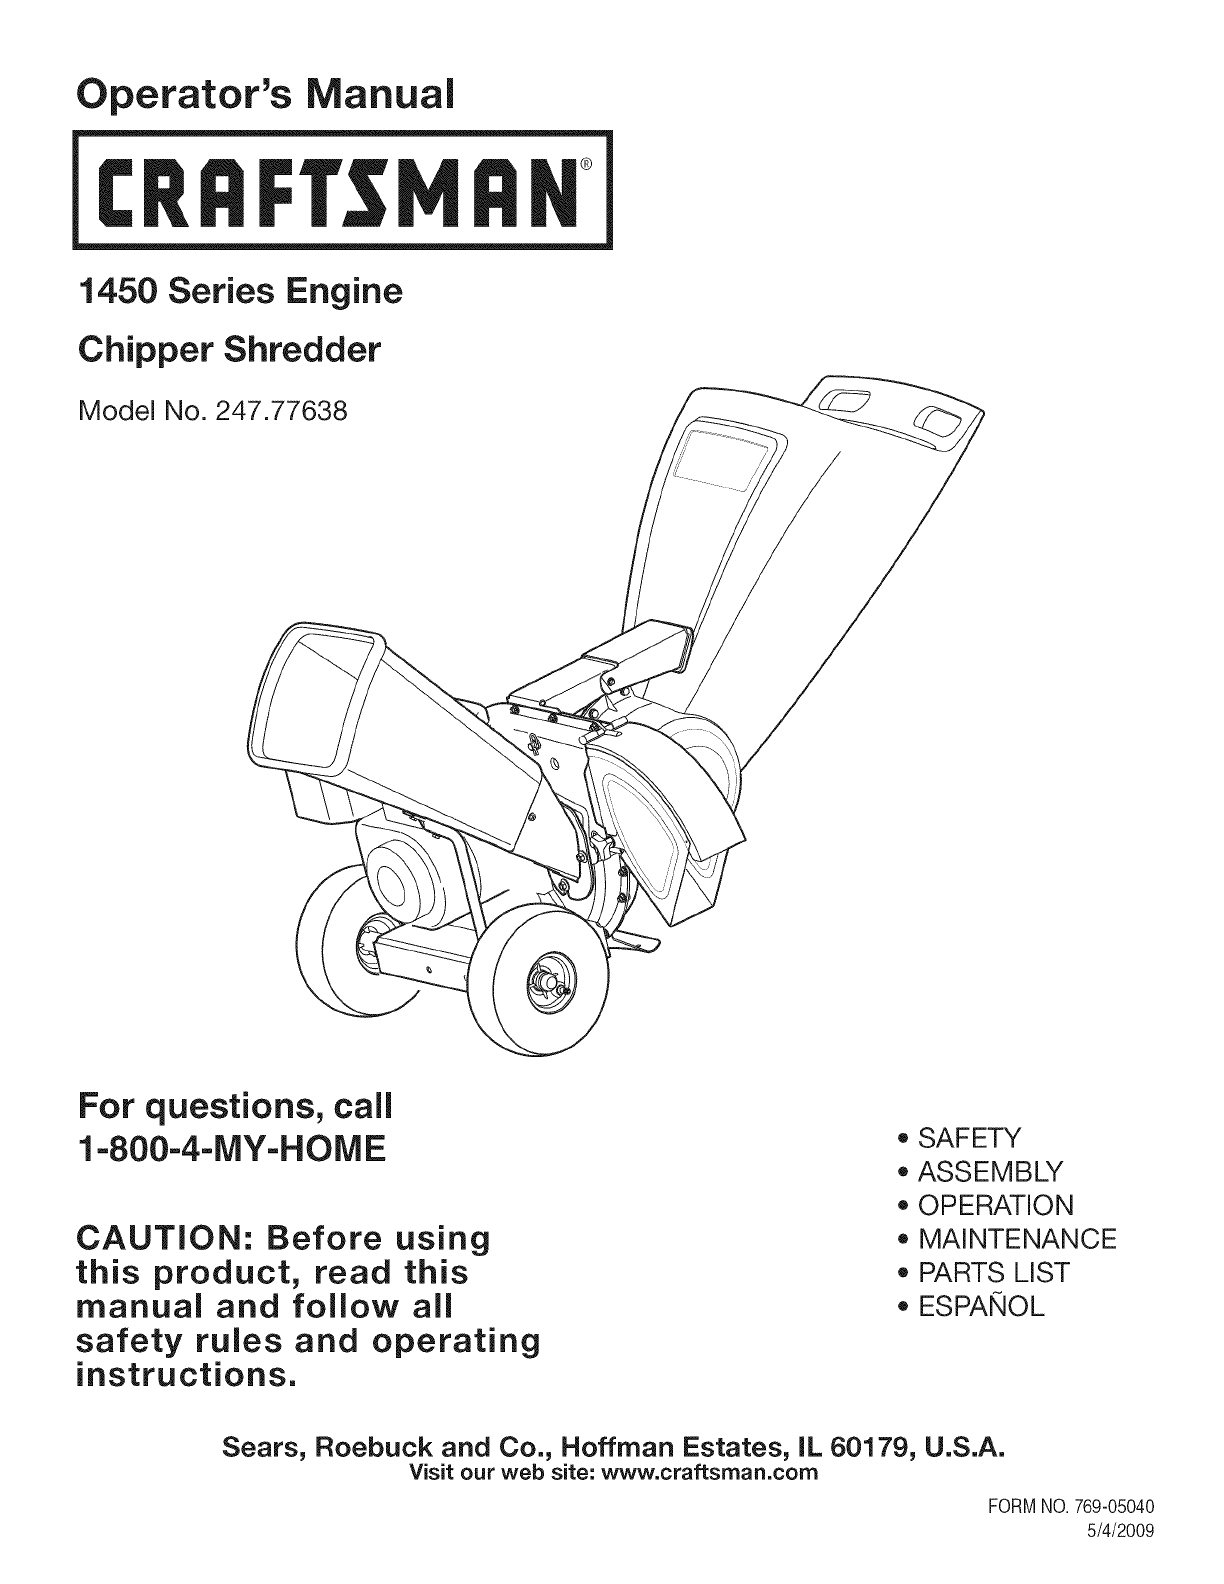 sears craftsman product manual user guide manual that easy to read u2022 rh sibere co craftsman tools manuals sears craftsman tools manuals